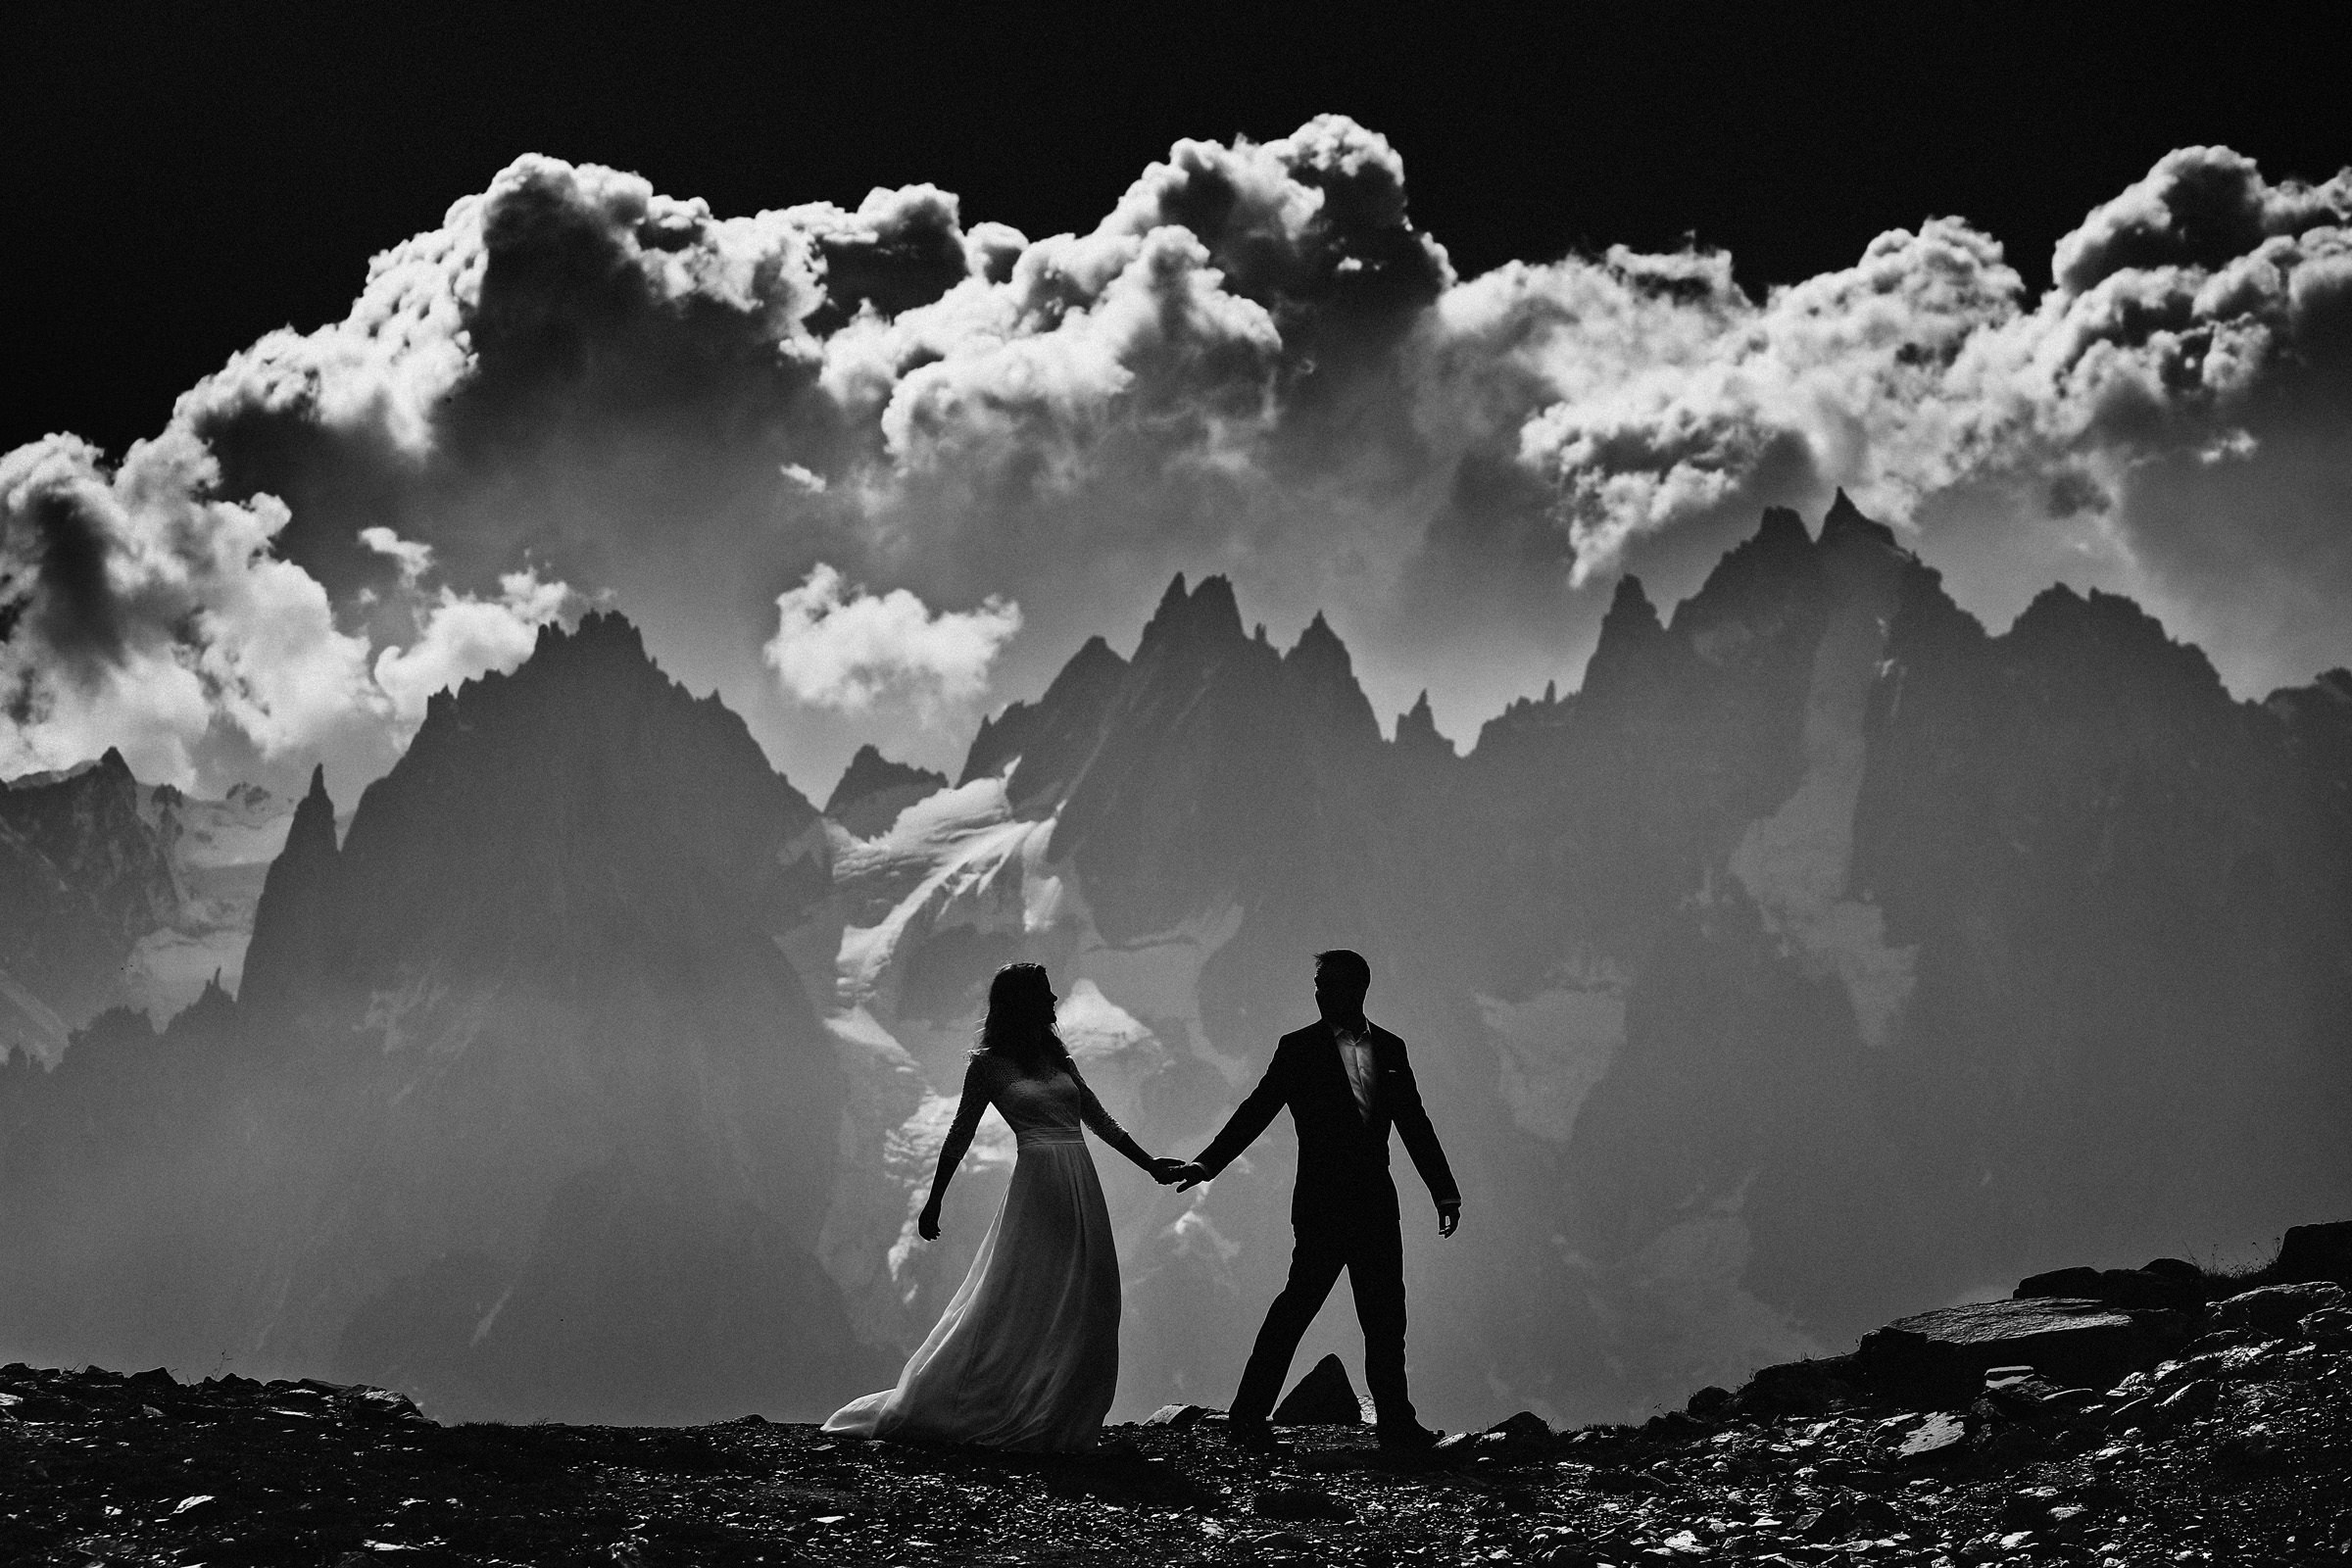 Bride and groom partial silhouette against mountains, by Franck Boutonnet